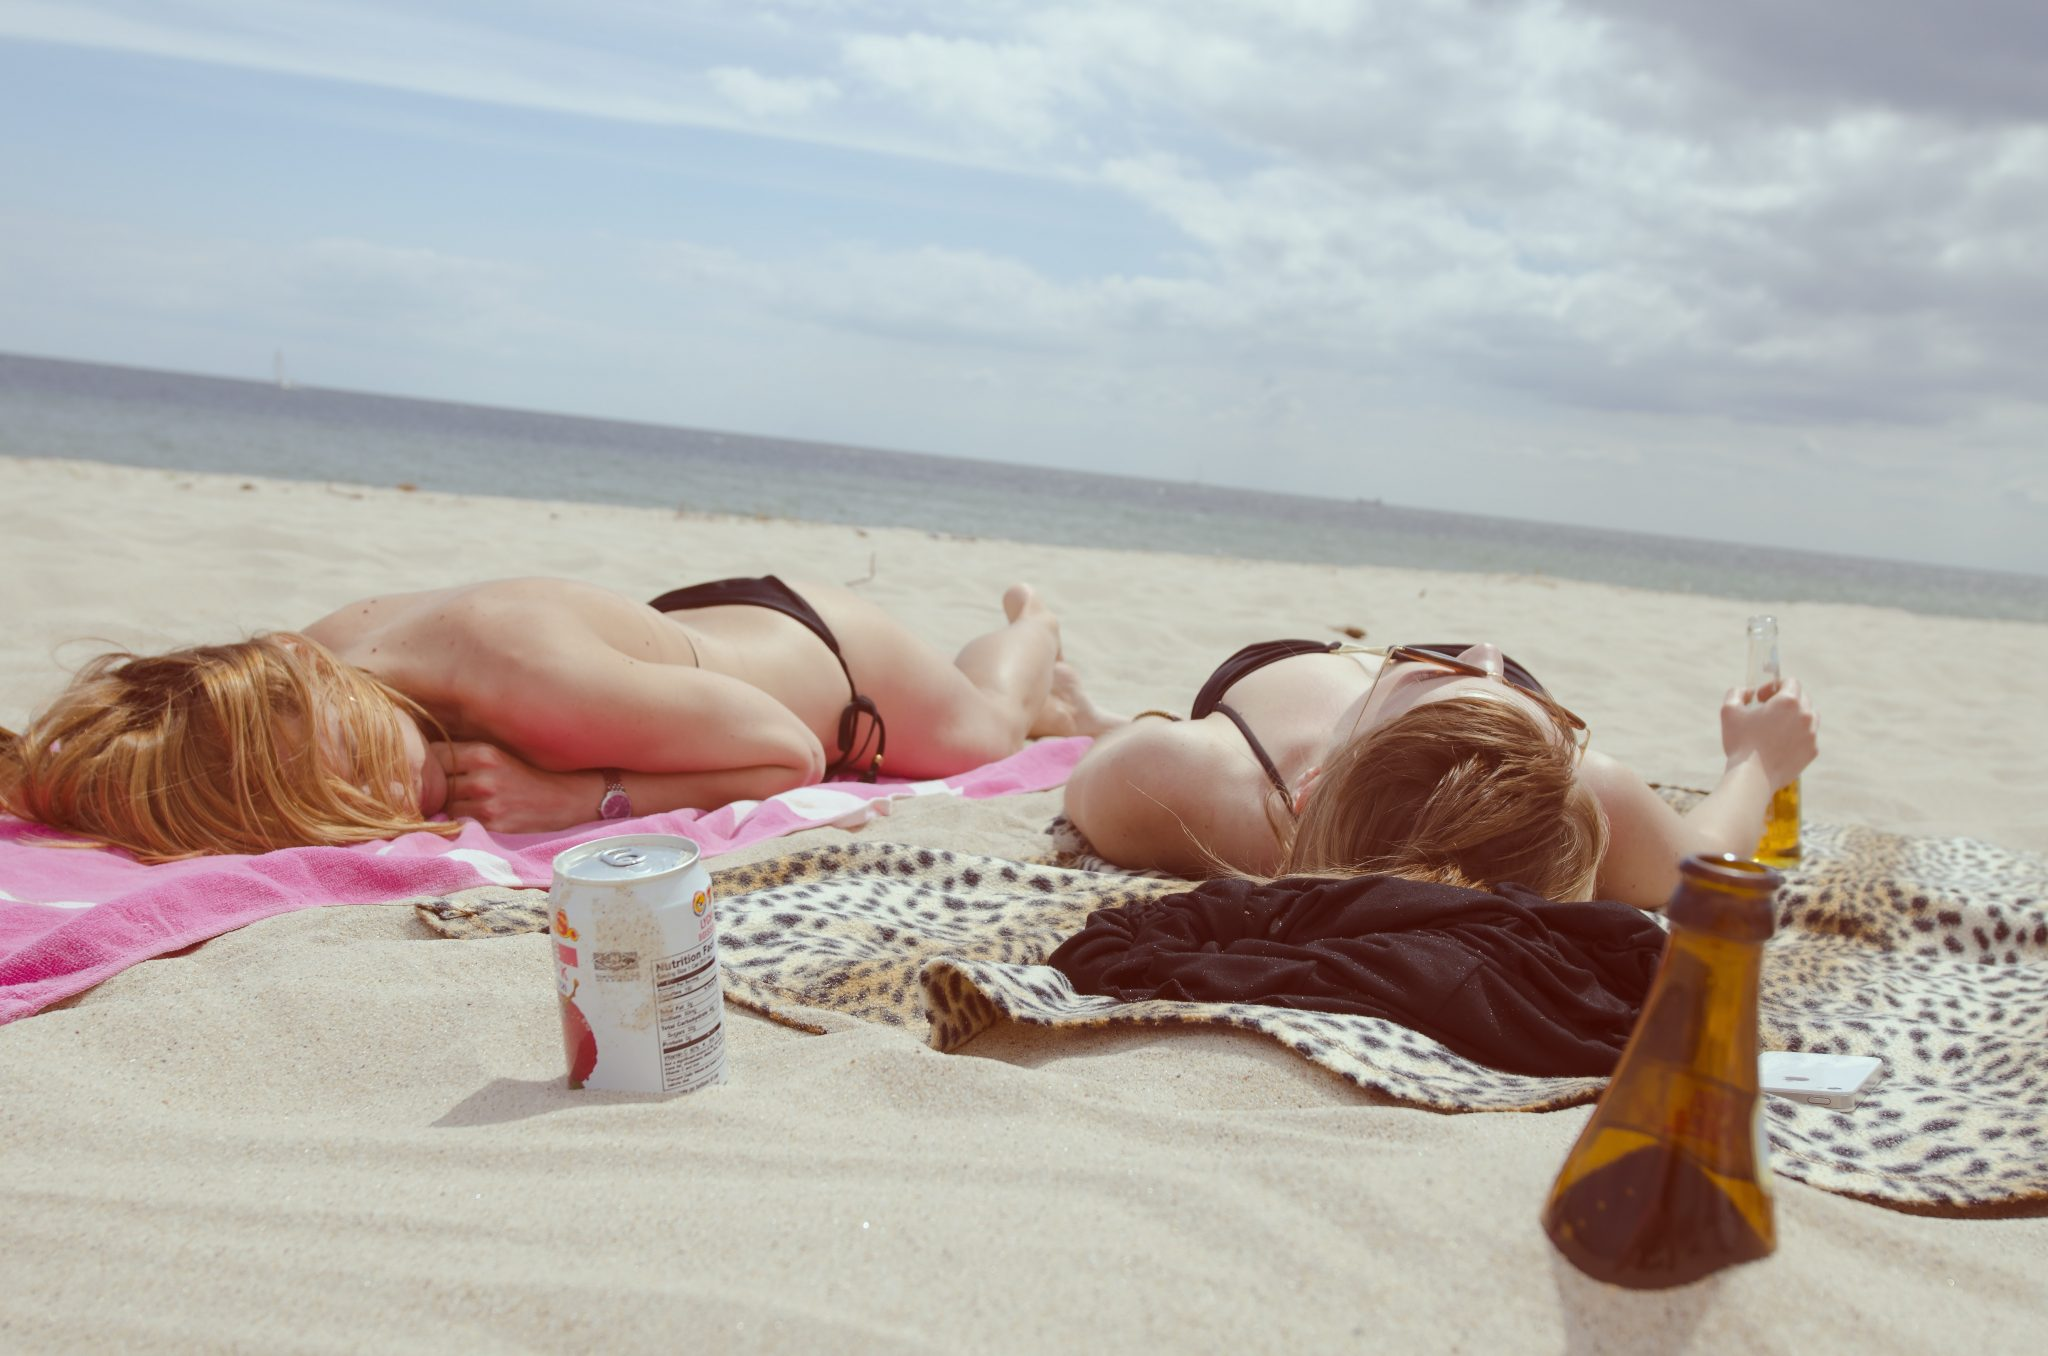 two women sunbathing on the beach having drinks